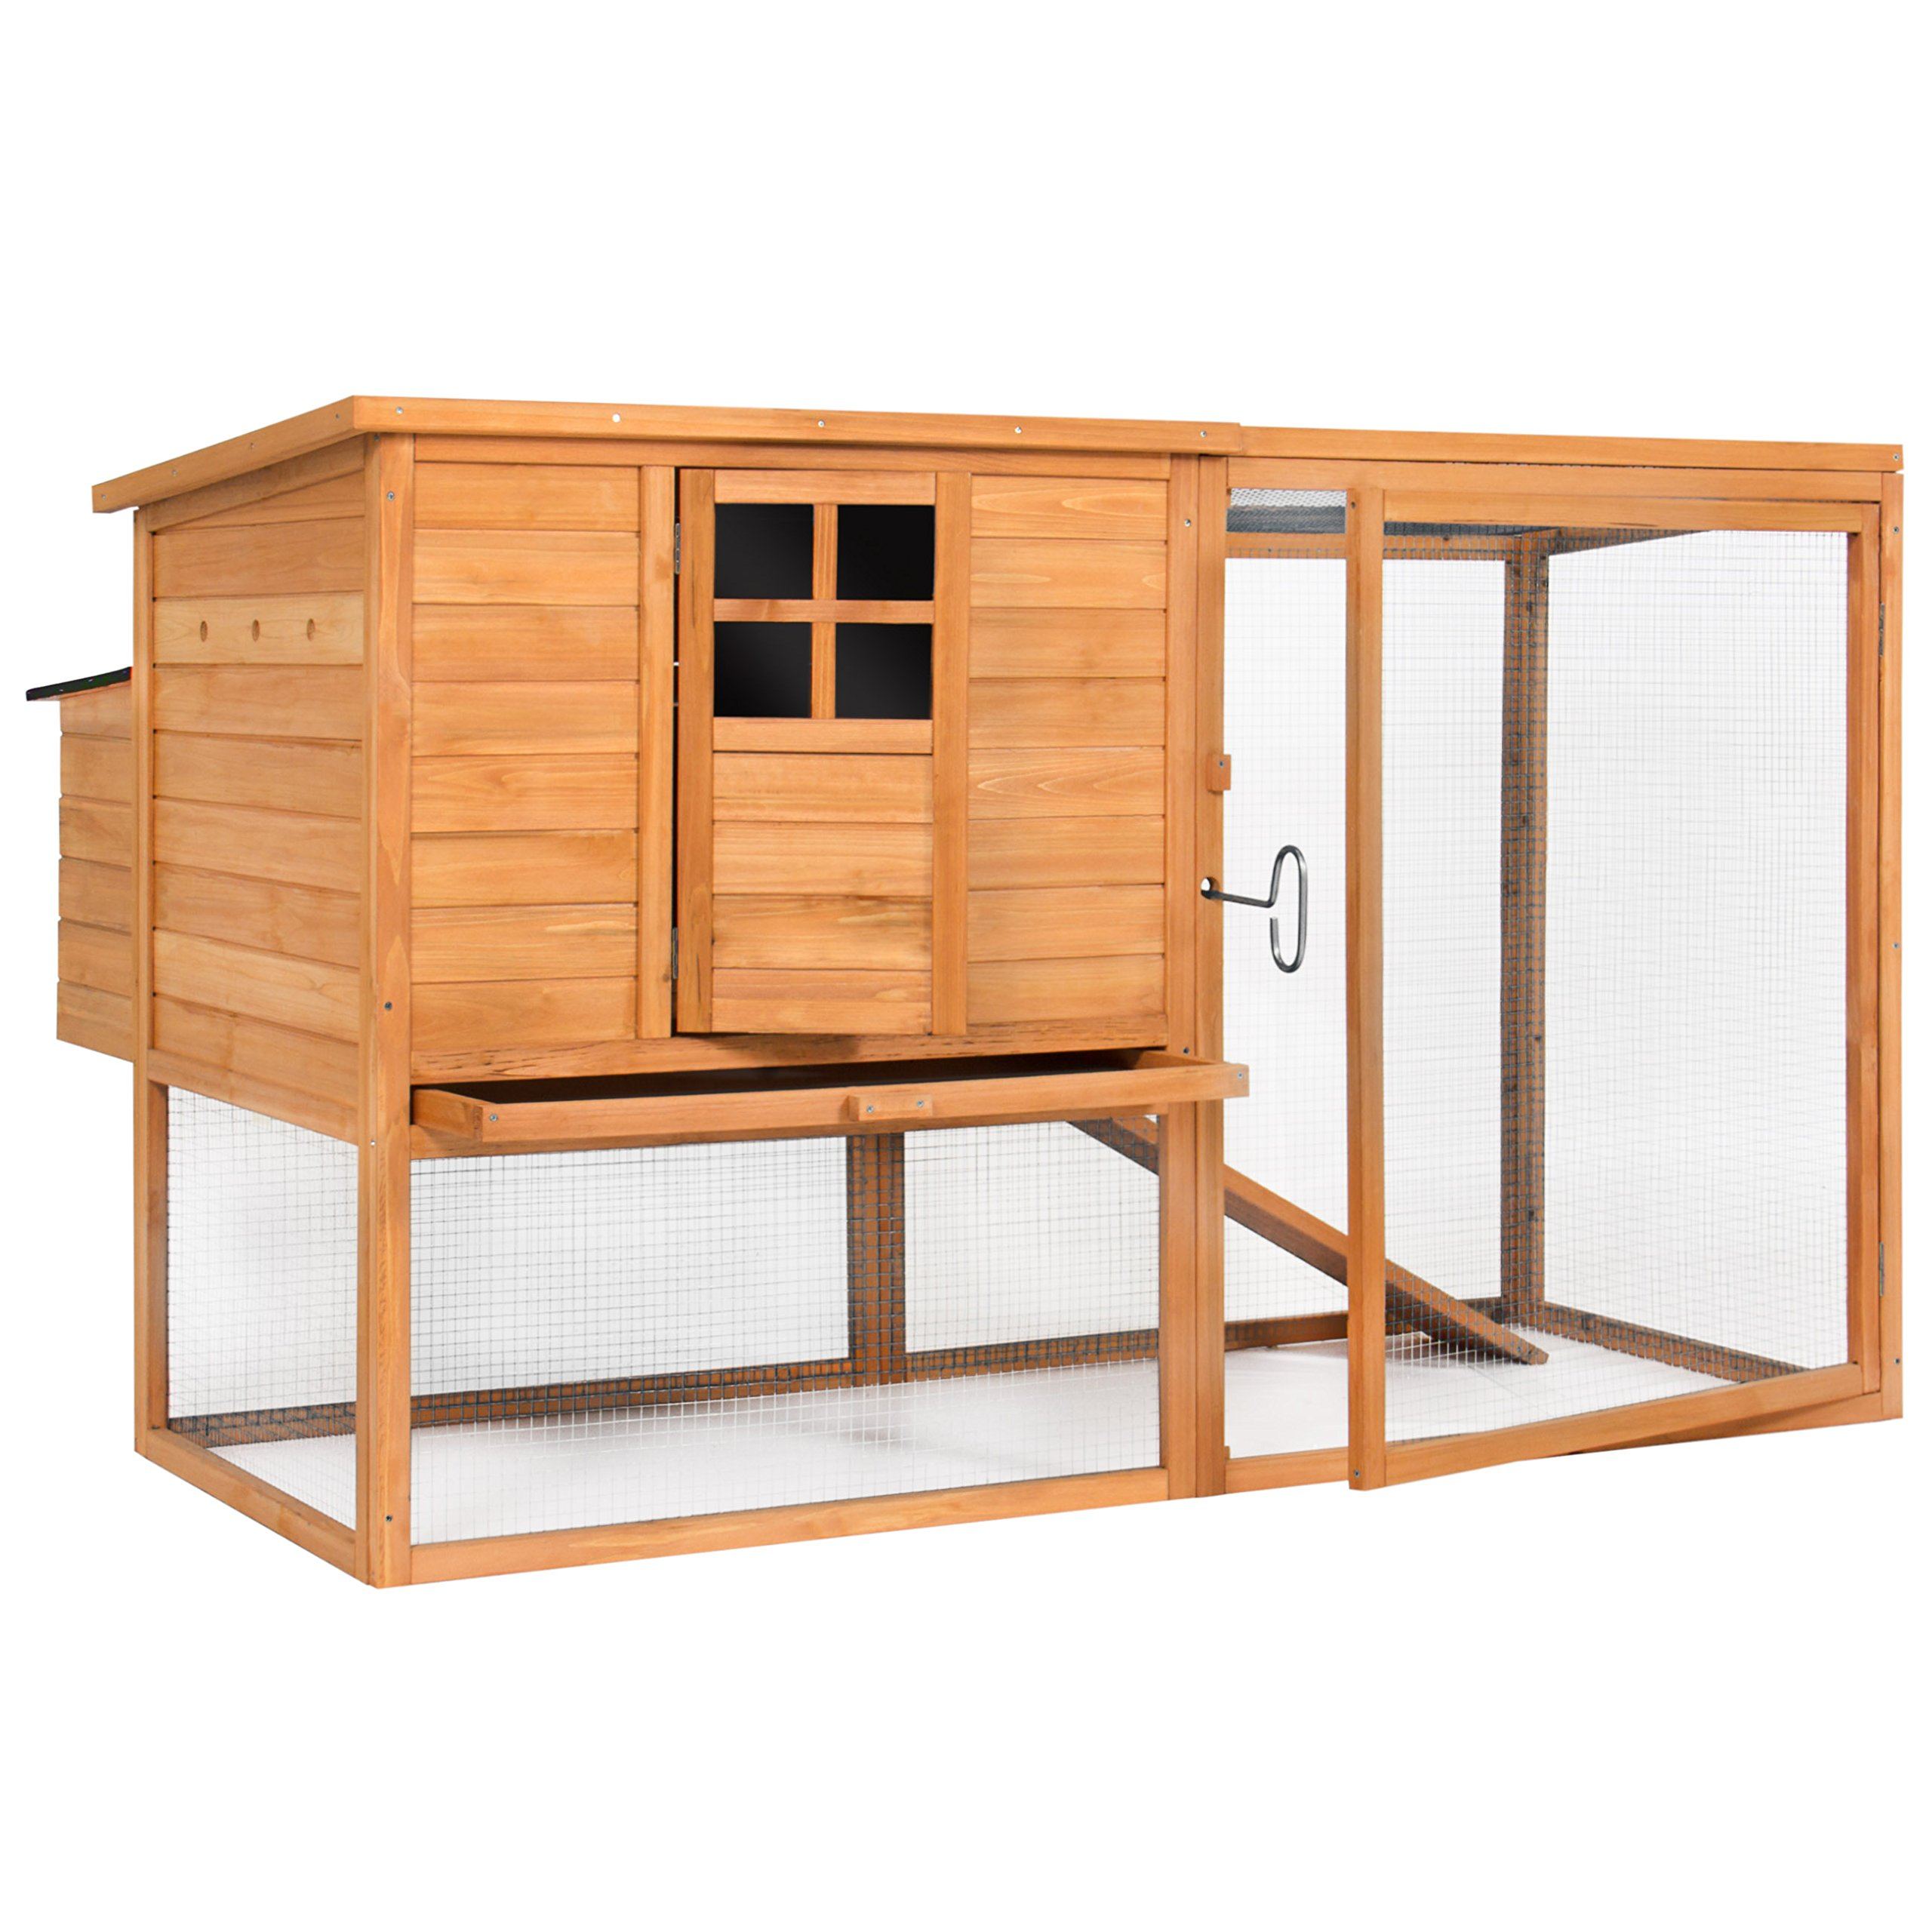 Best Choice Products Outdoor Wooden Chicken Coop Nesting Hen House, 66in, Brown, w/Poultry Cage by Best Choice Products